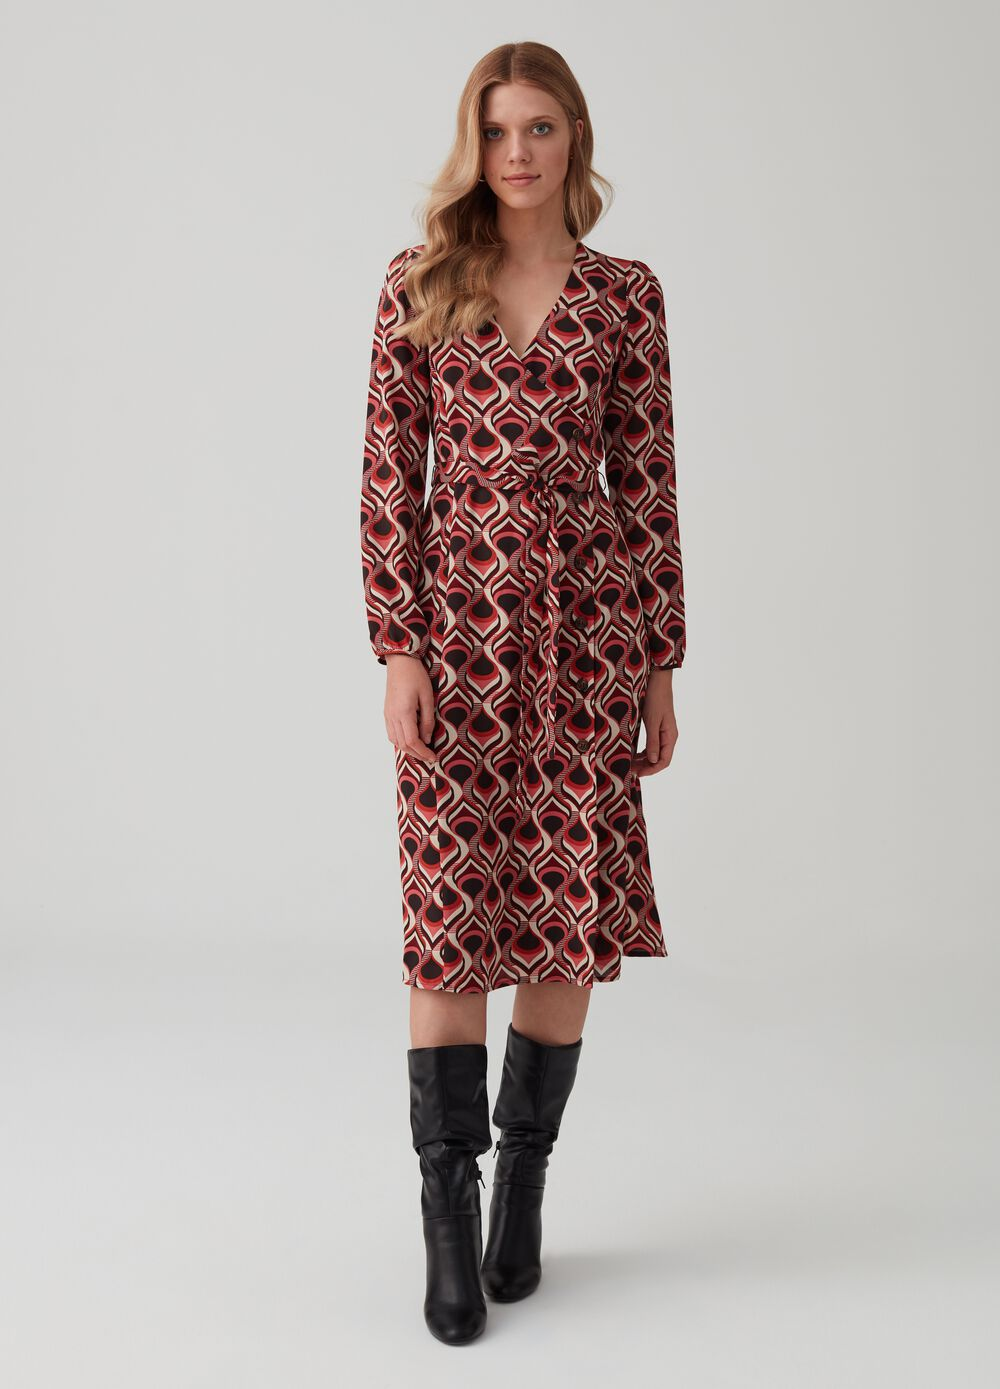 Midi dress with patterned crossover